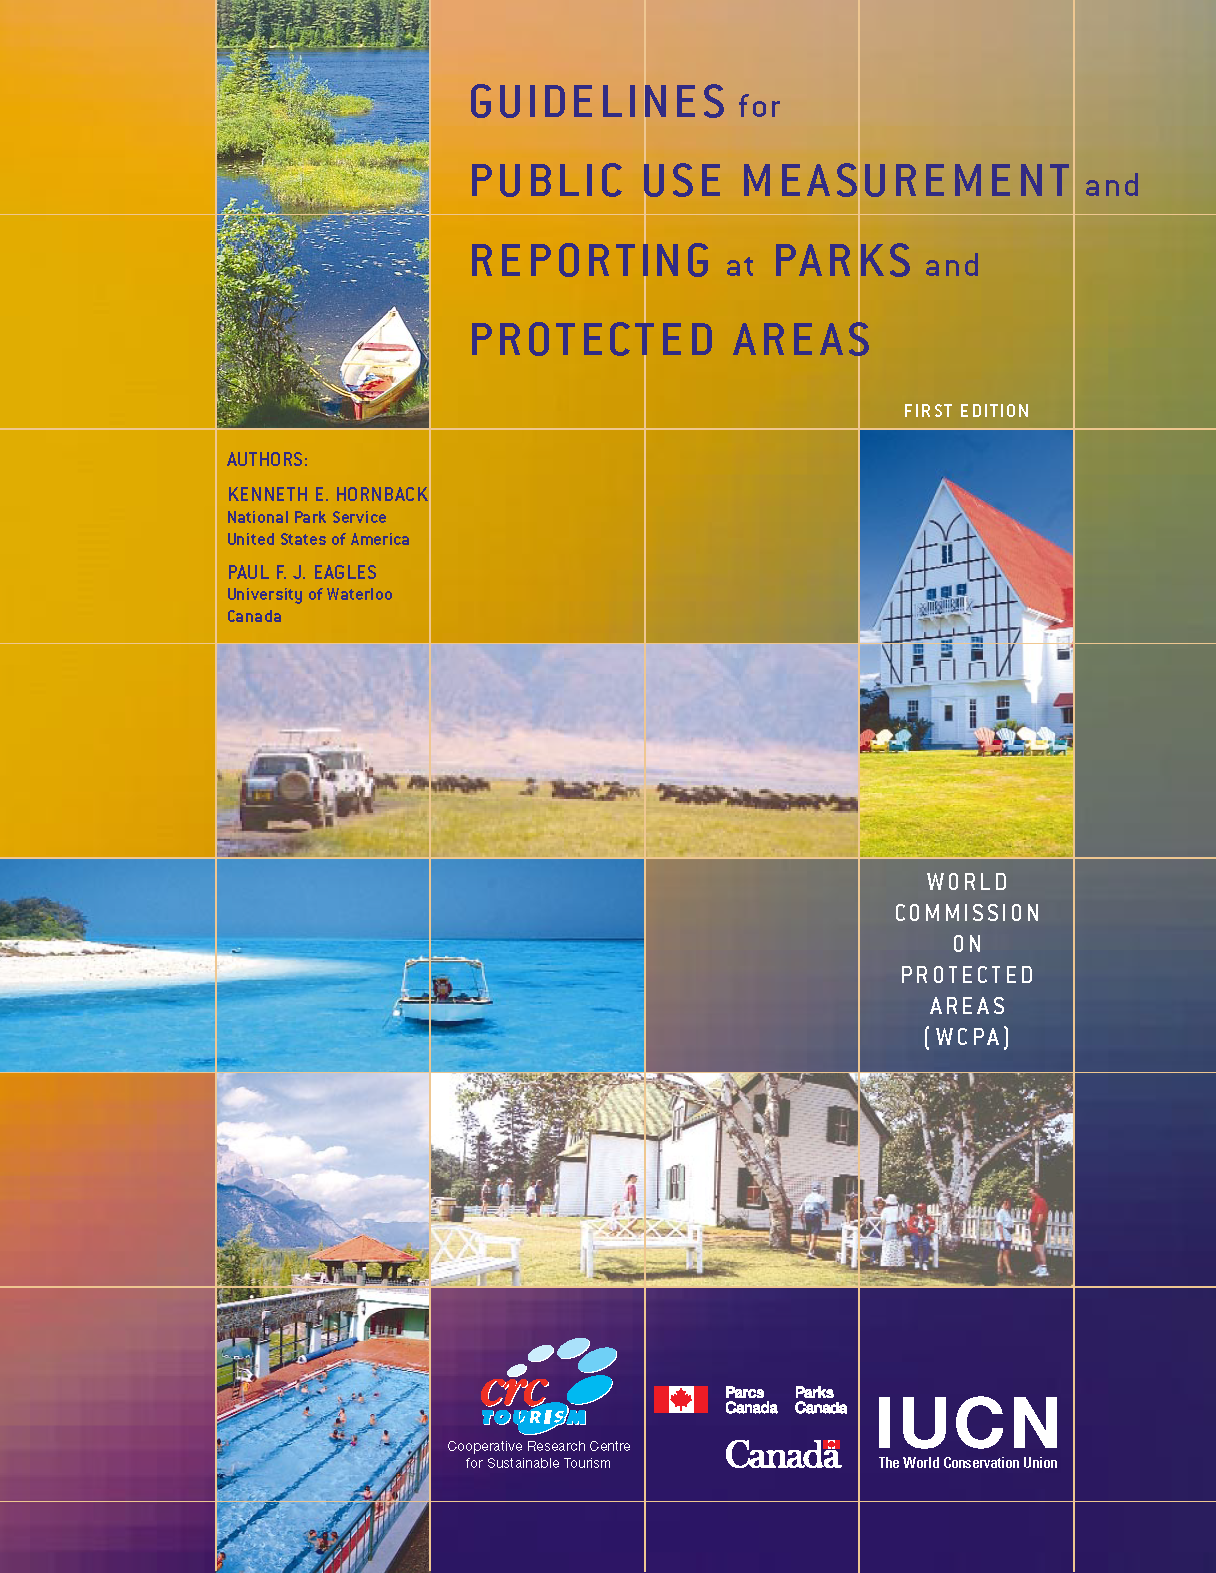 Capa da Guidelines for public use measurement and reporting at parks and protected areas